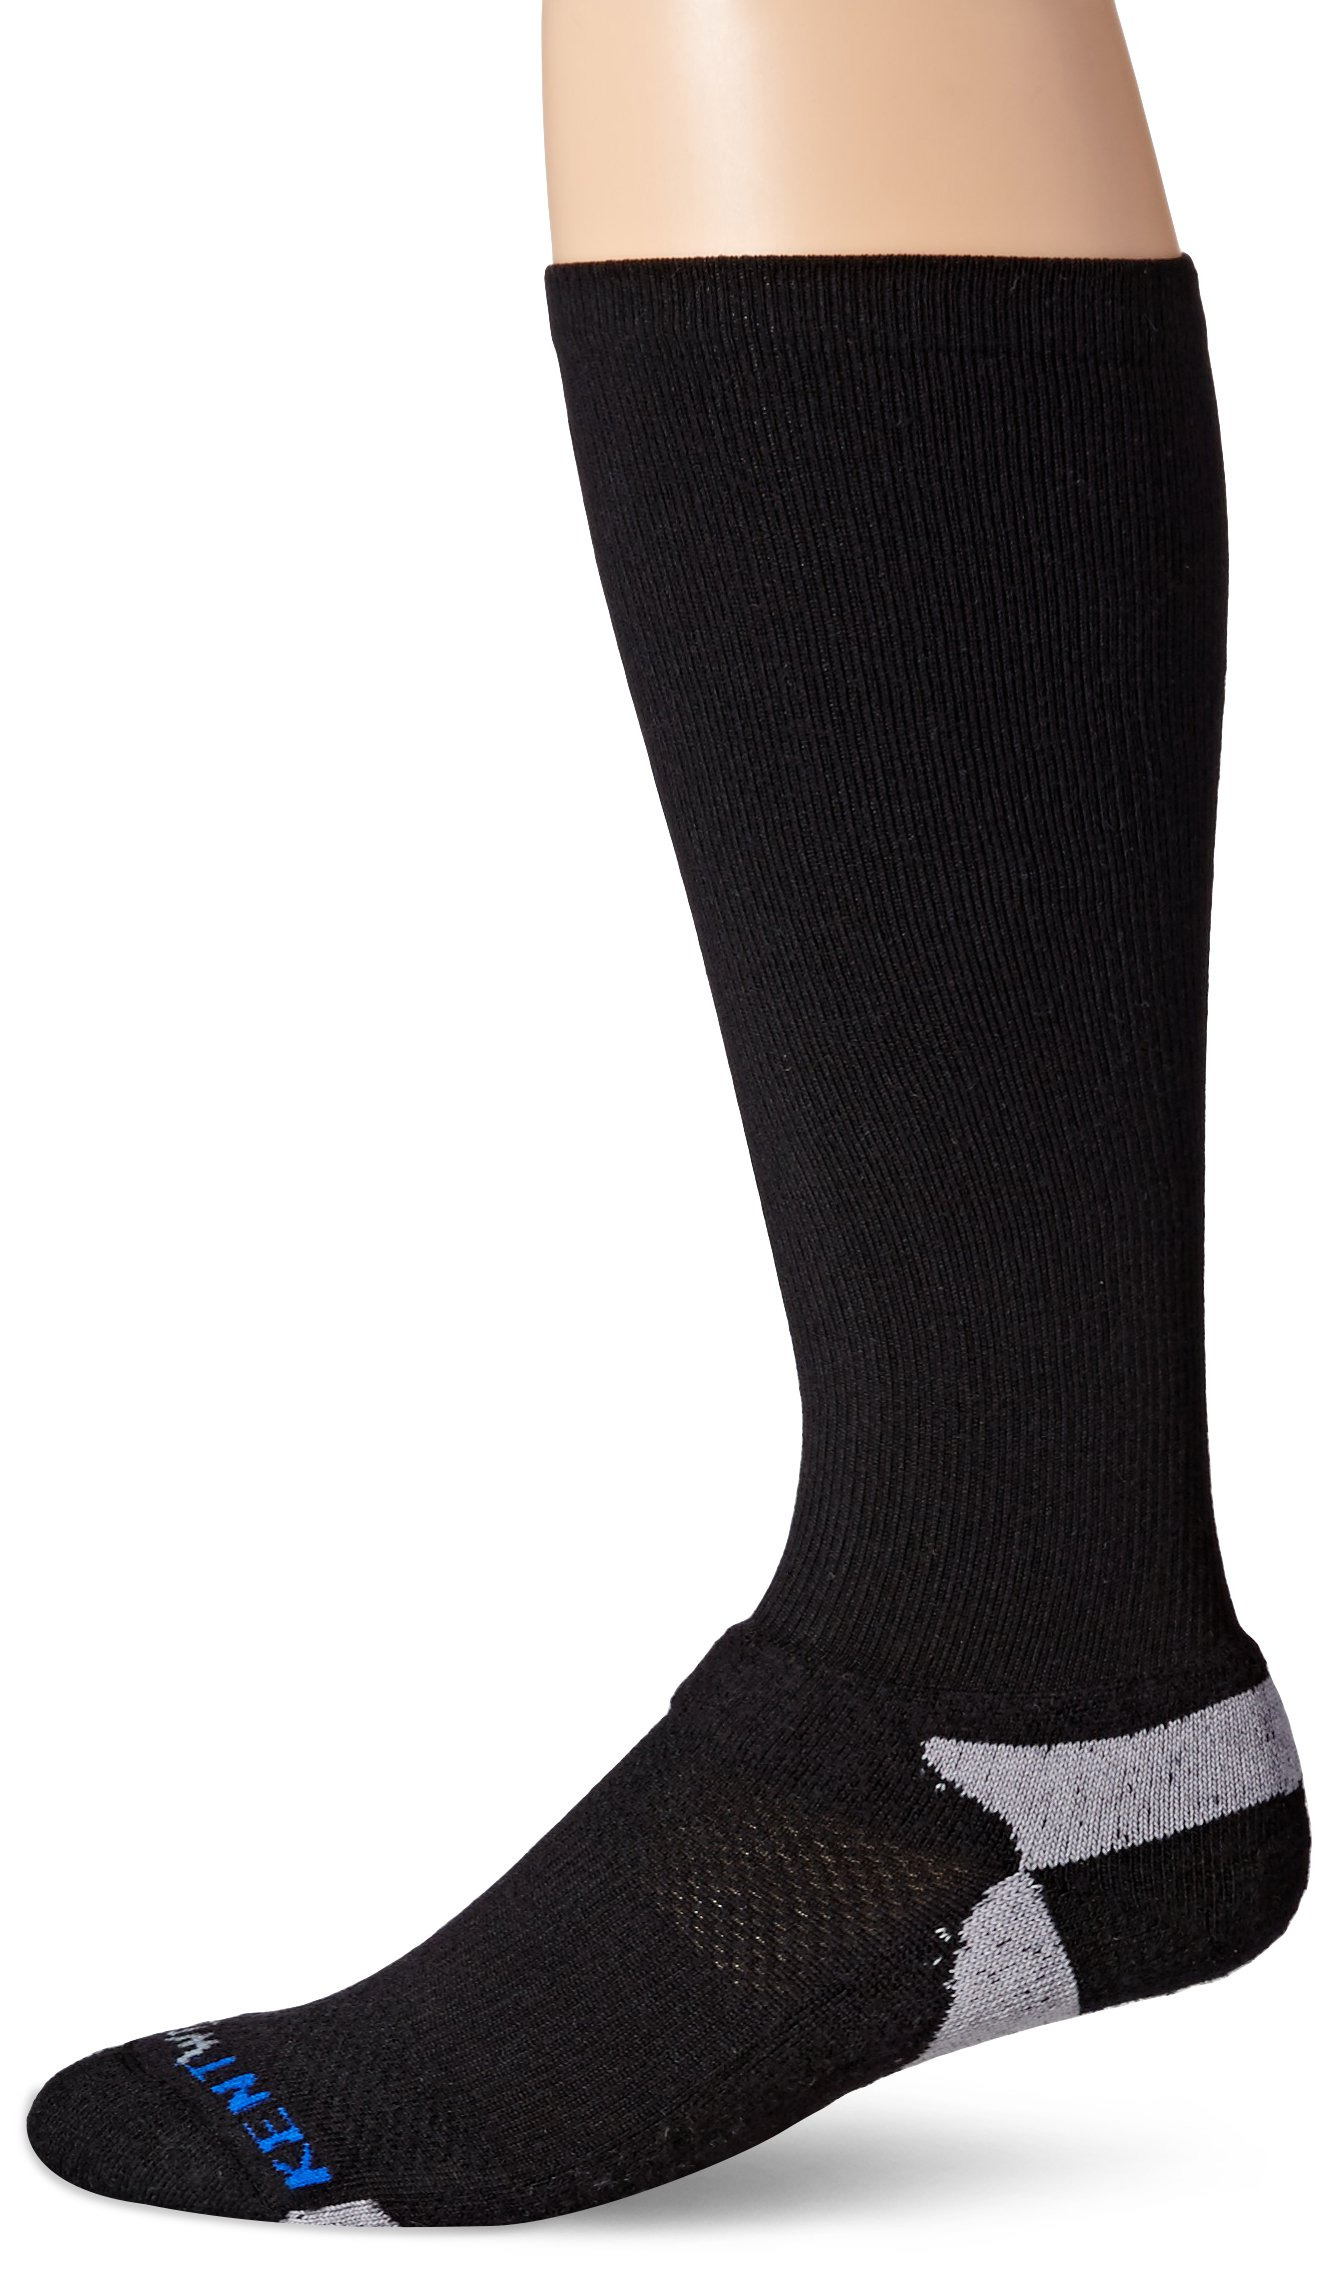 KENTWOOL Men's The Graduate Compression Sock (Black, Large) by KENTWOOL